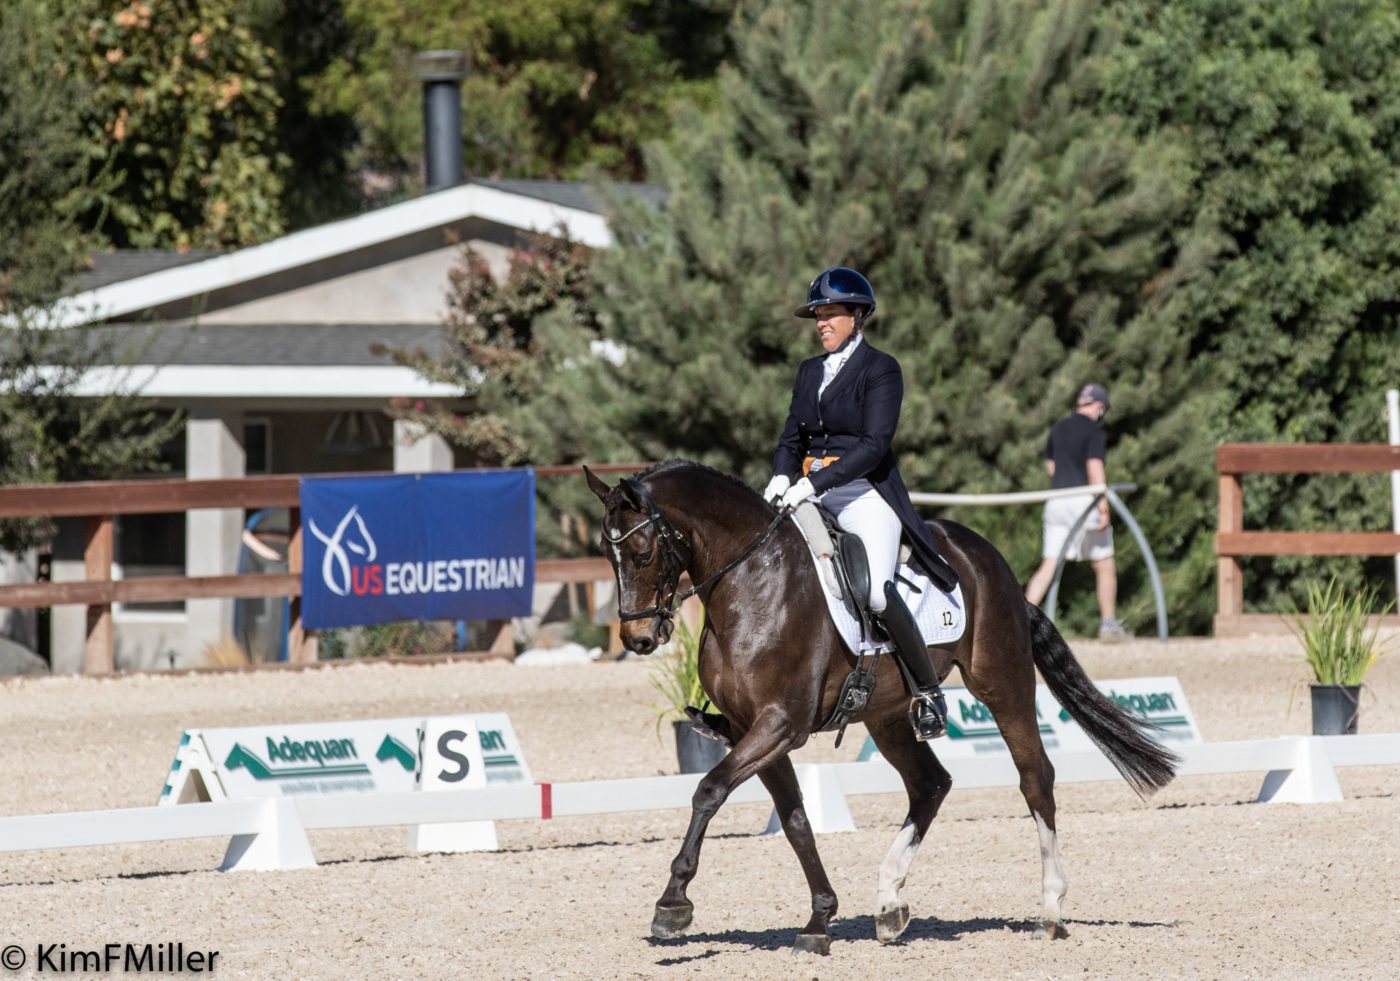 CCI3*-L - 3rd - Auburn Excell-Brady and BSP Tuxedo - 34.2